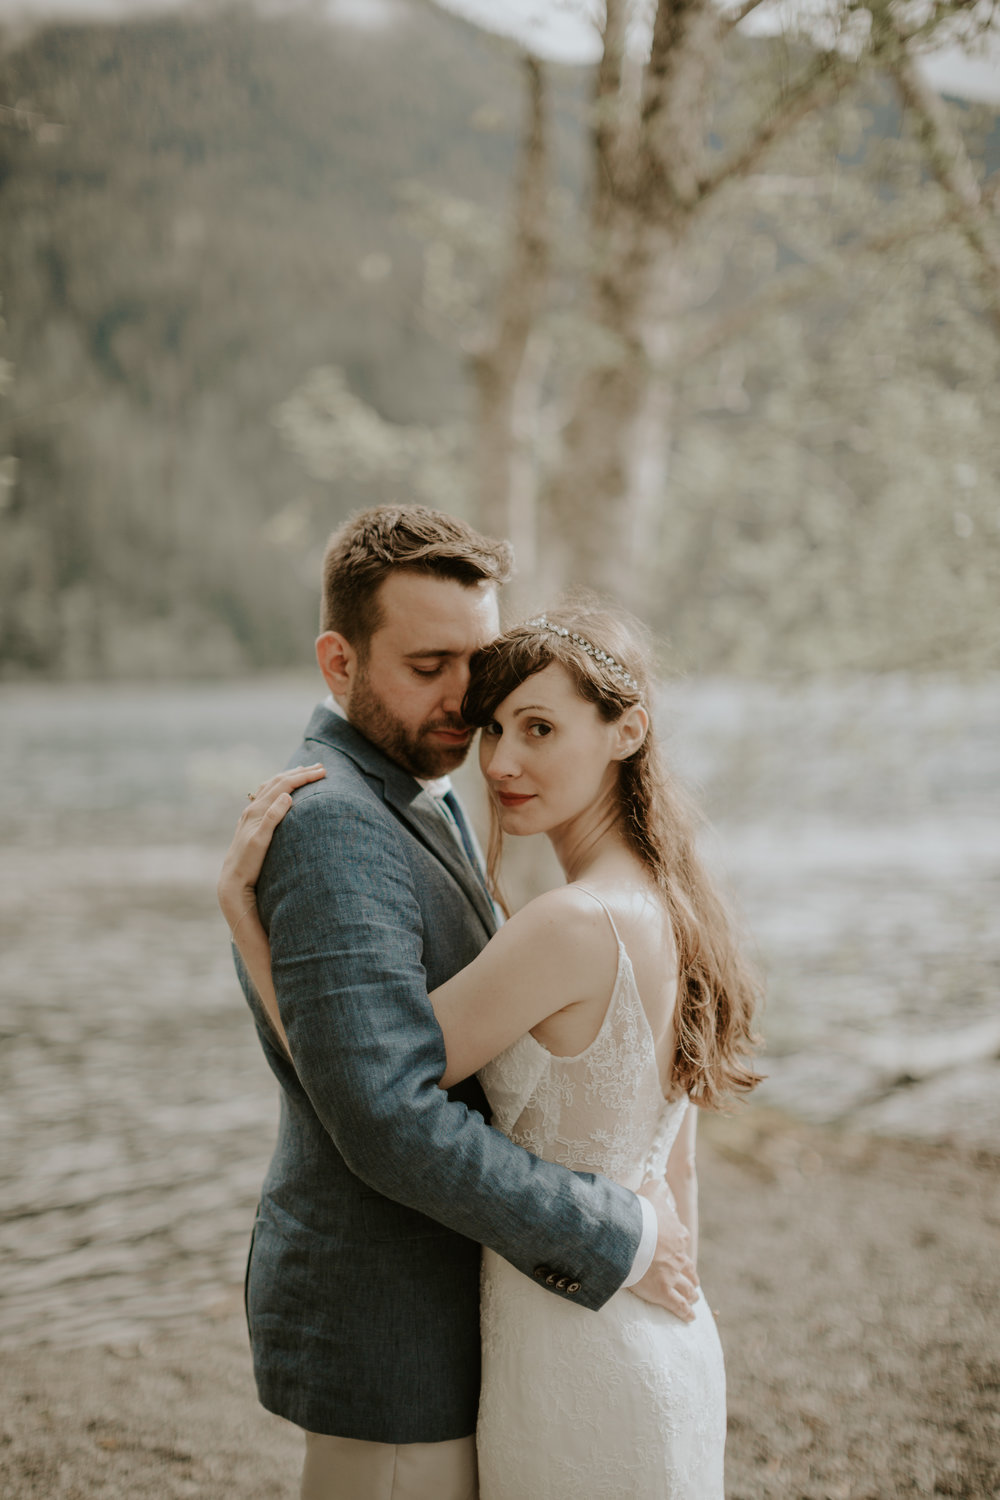 PNW-elopement-wedding-engagement-olympic national park-port angeles-hurricane ridge-lake crescent-kayla dawn photography- photographer-photography-kayladawnphoto-270.jpg